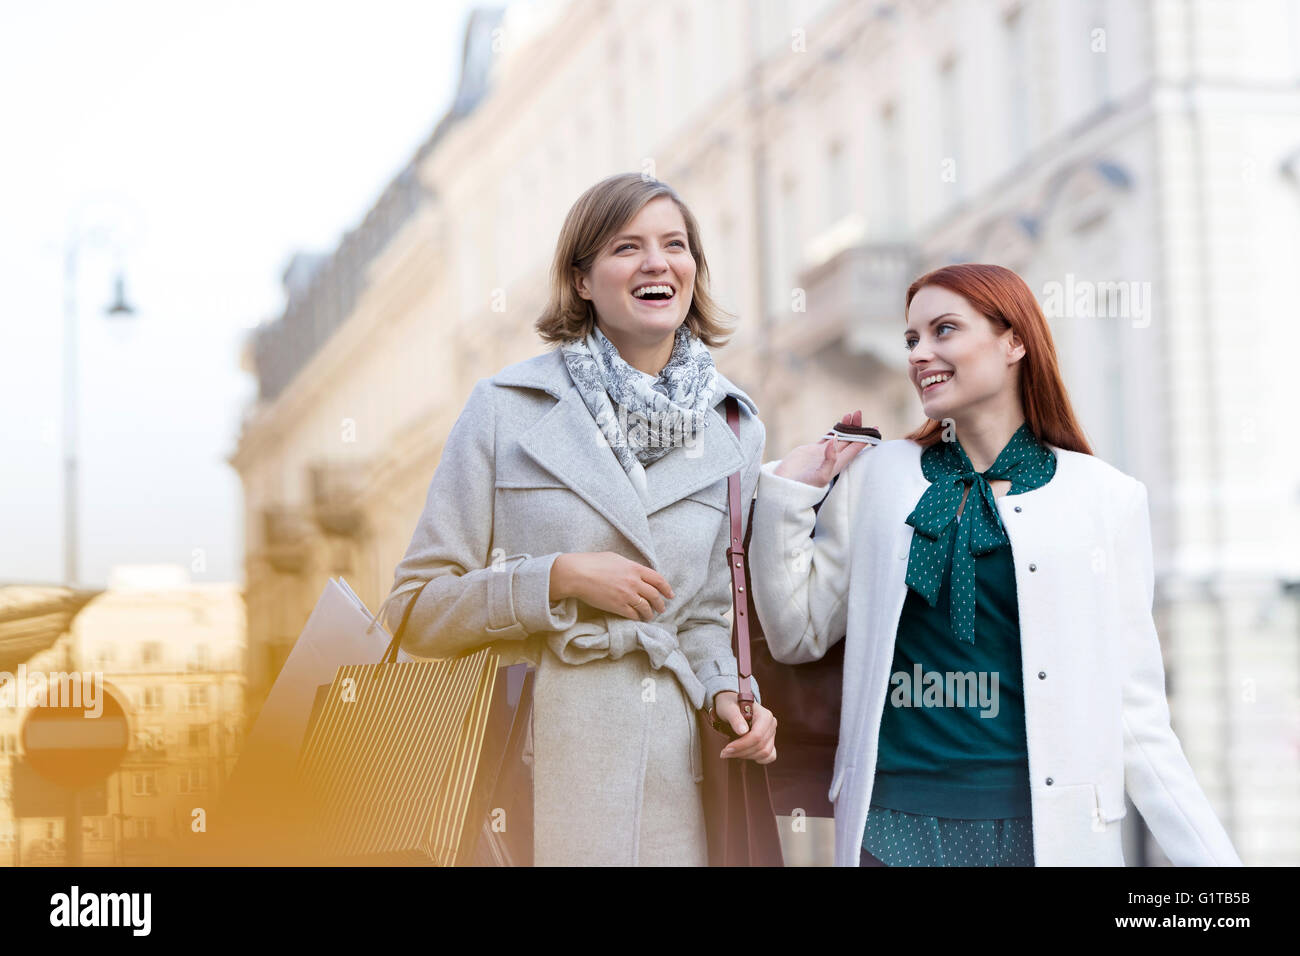 Smiling women carrying shopping bags in city Stock Photo